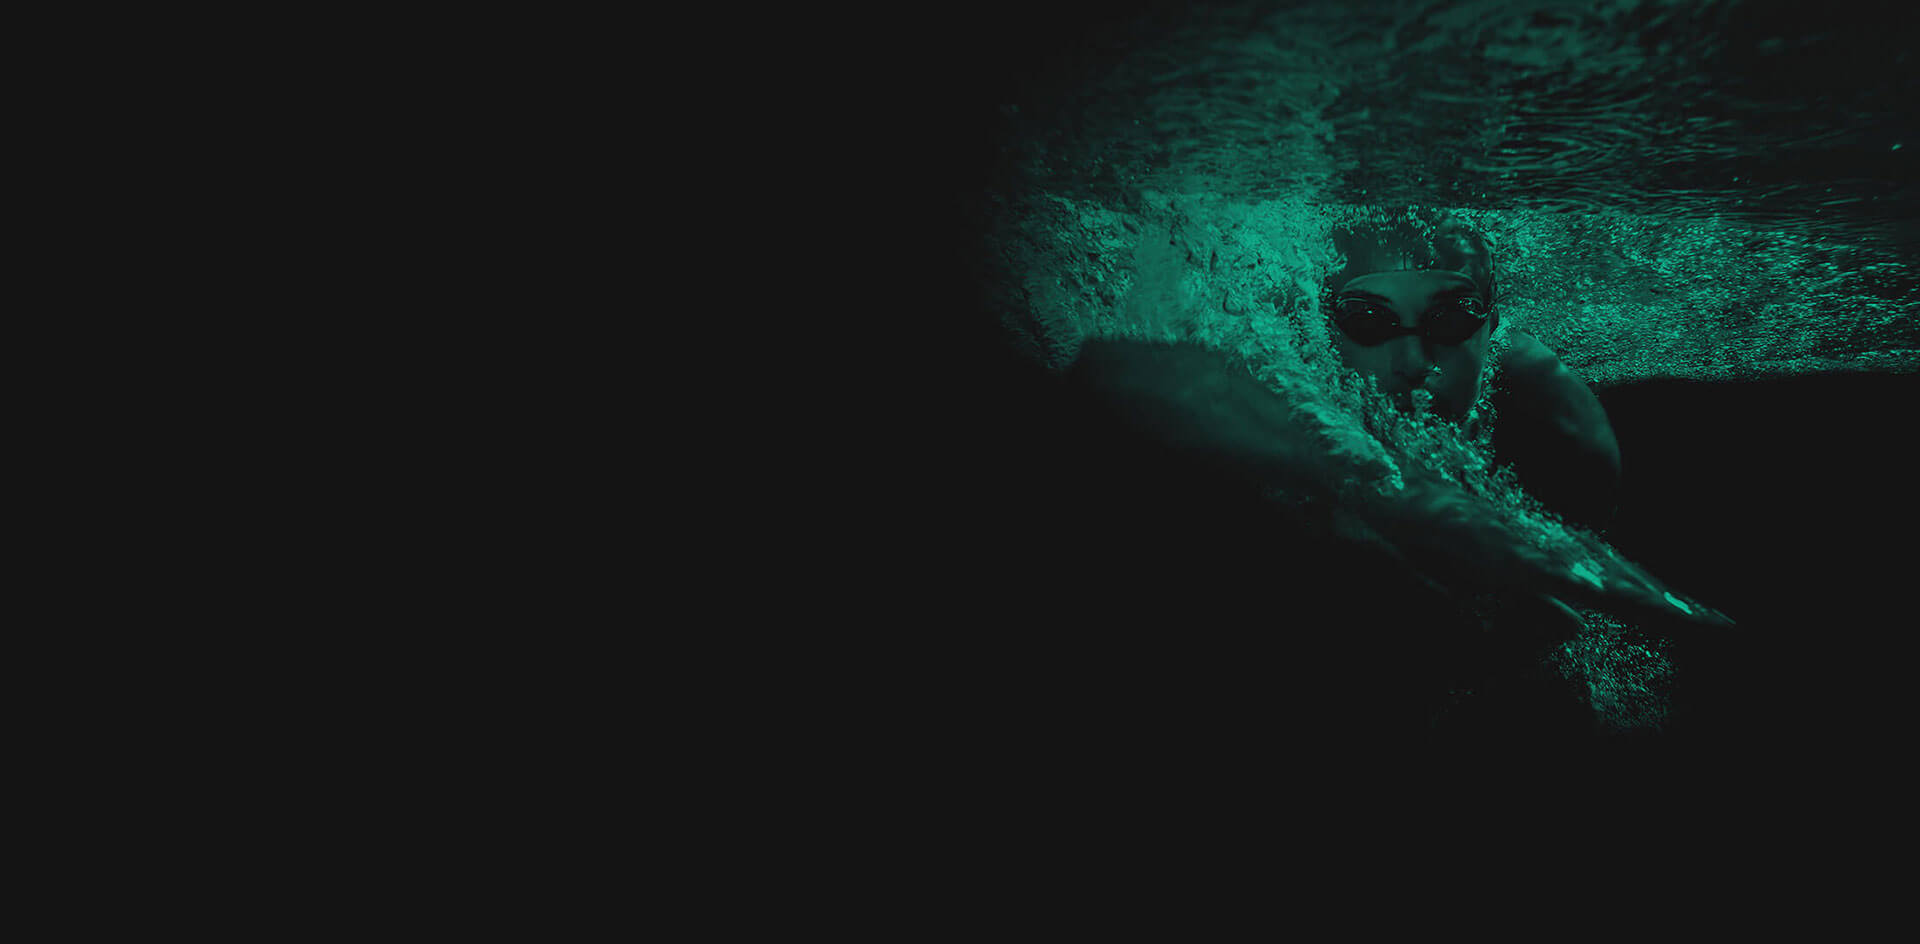 Green and black background image with a man swimming